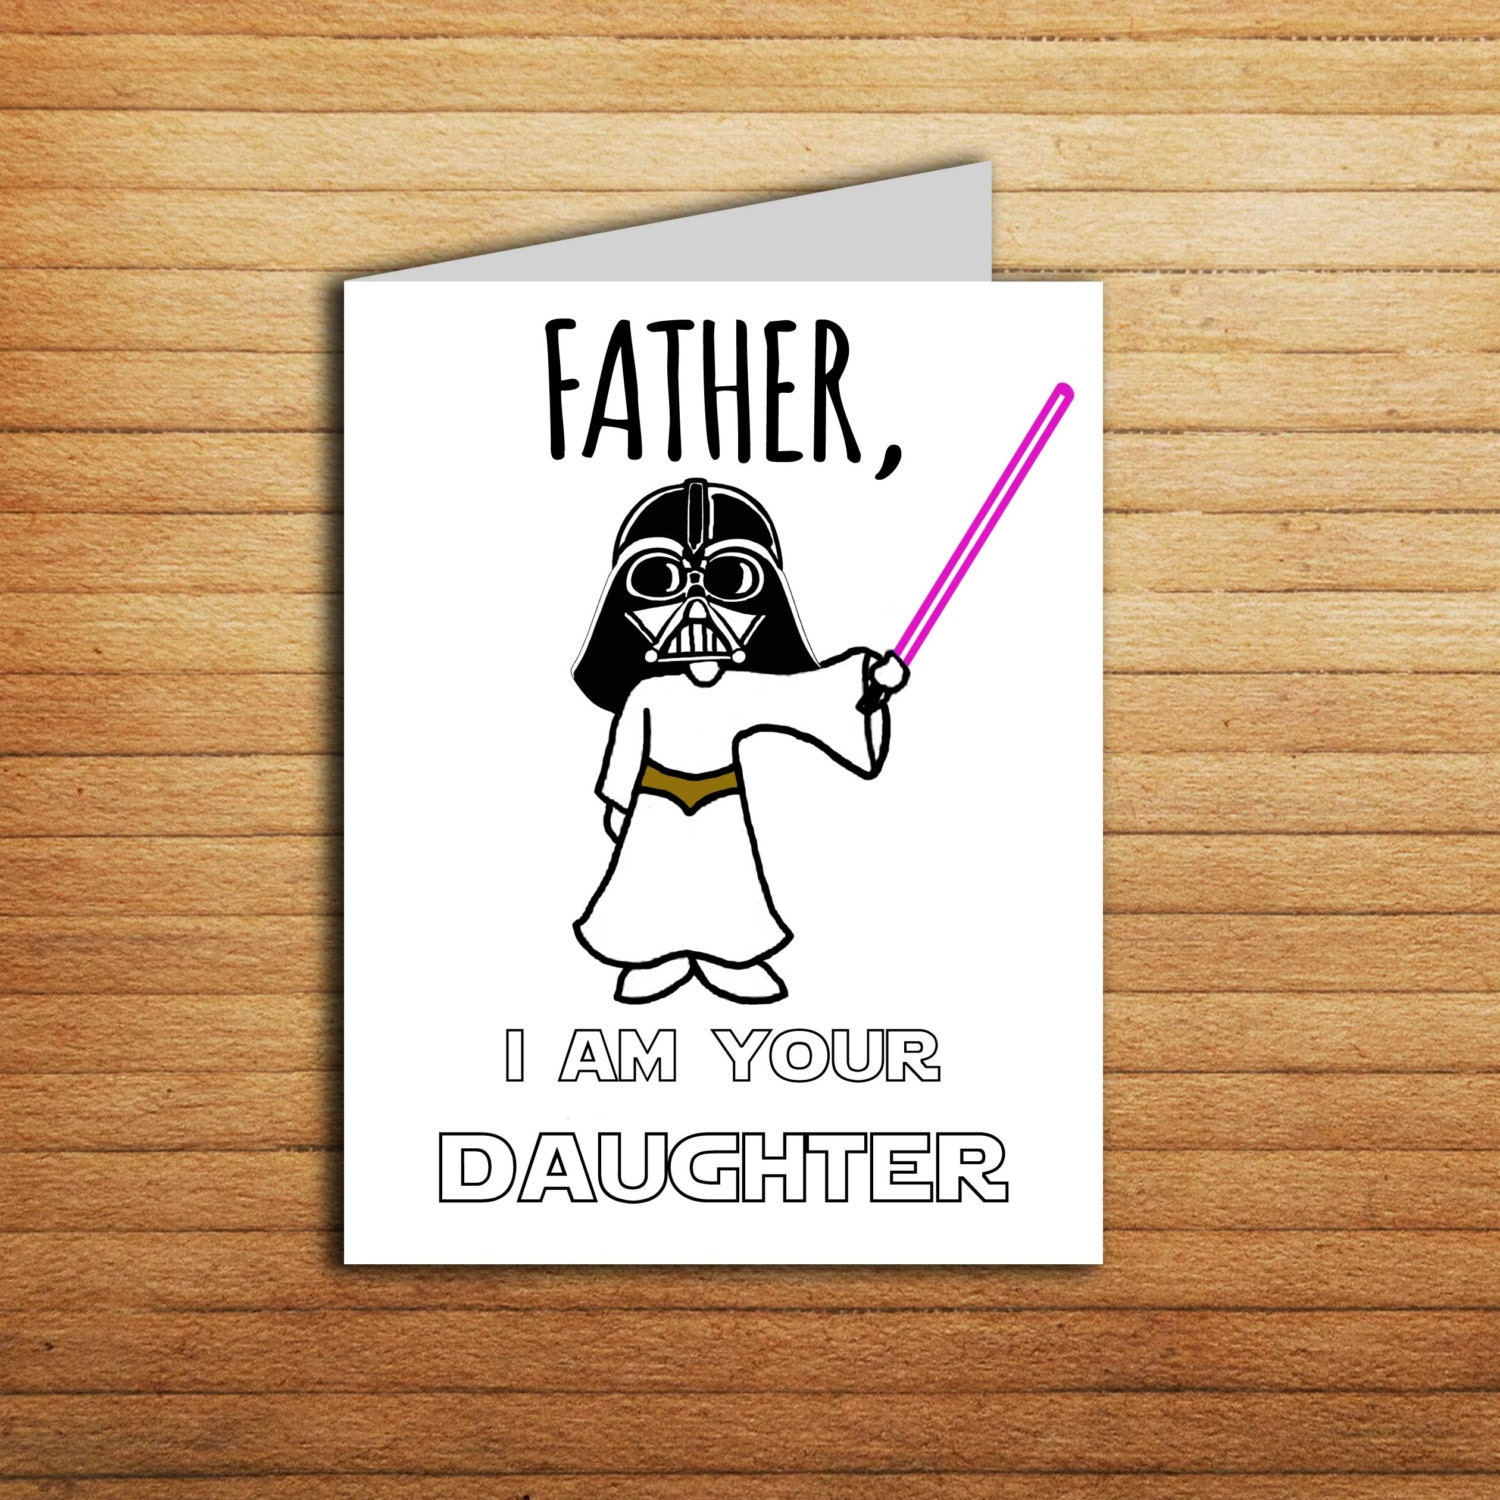 Funny Dad Birthday Cards – gangcraft